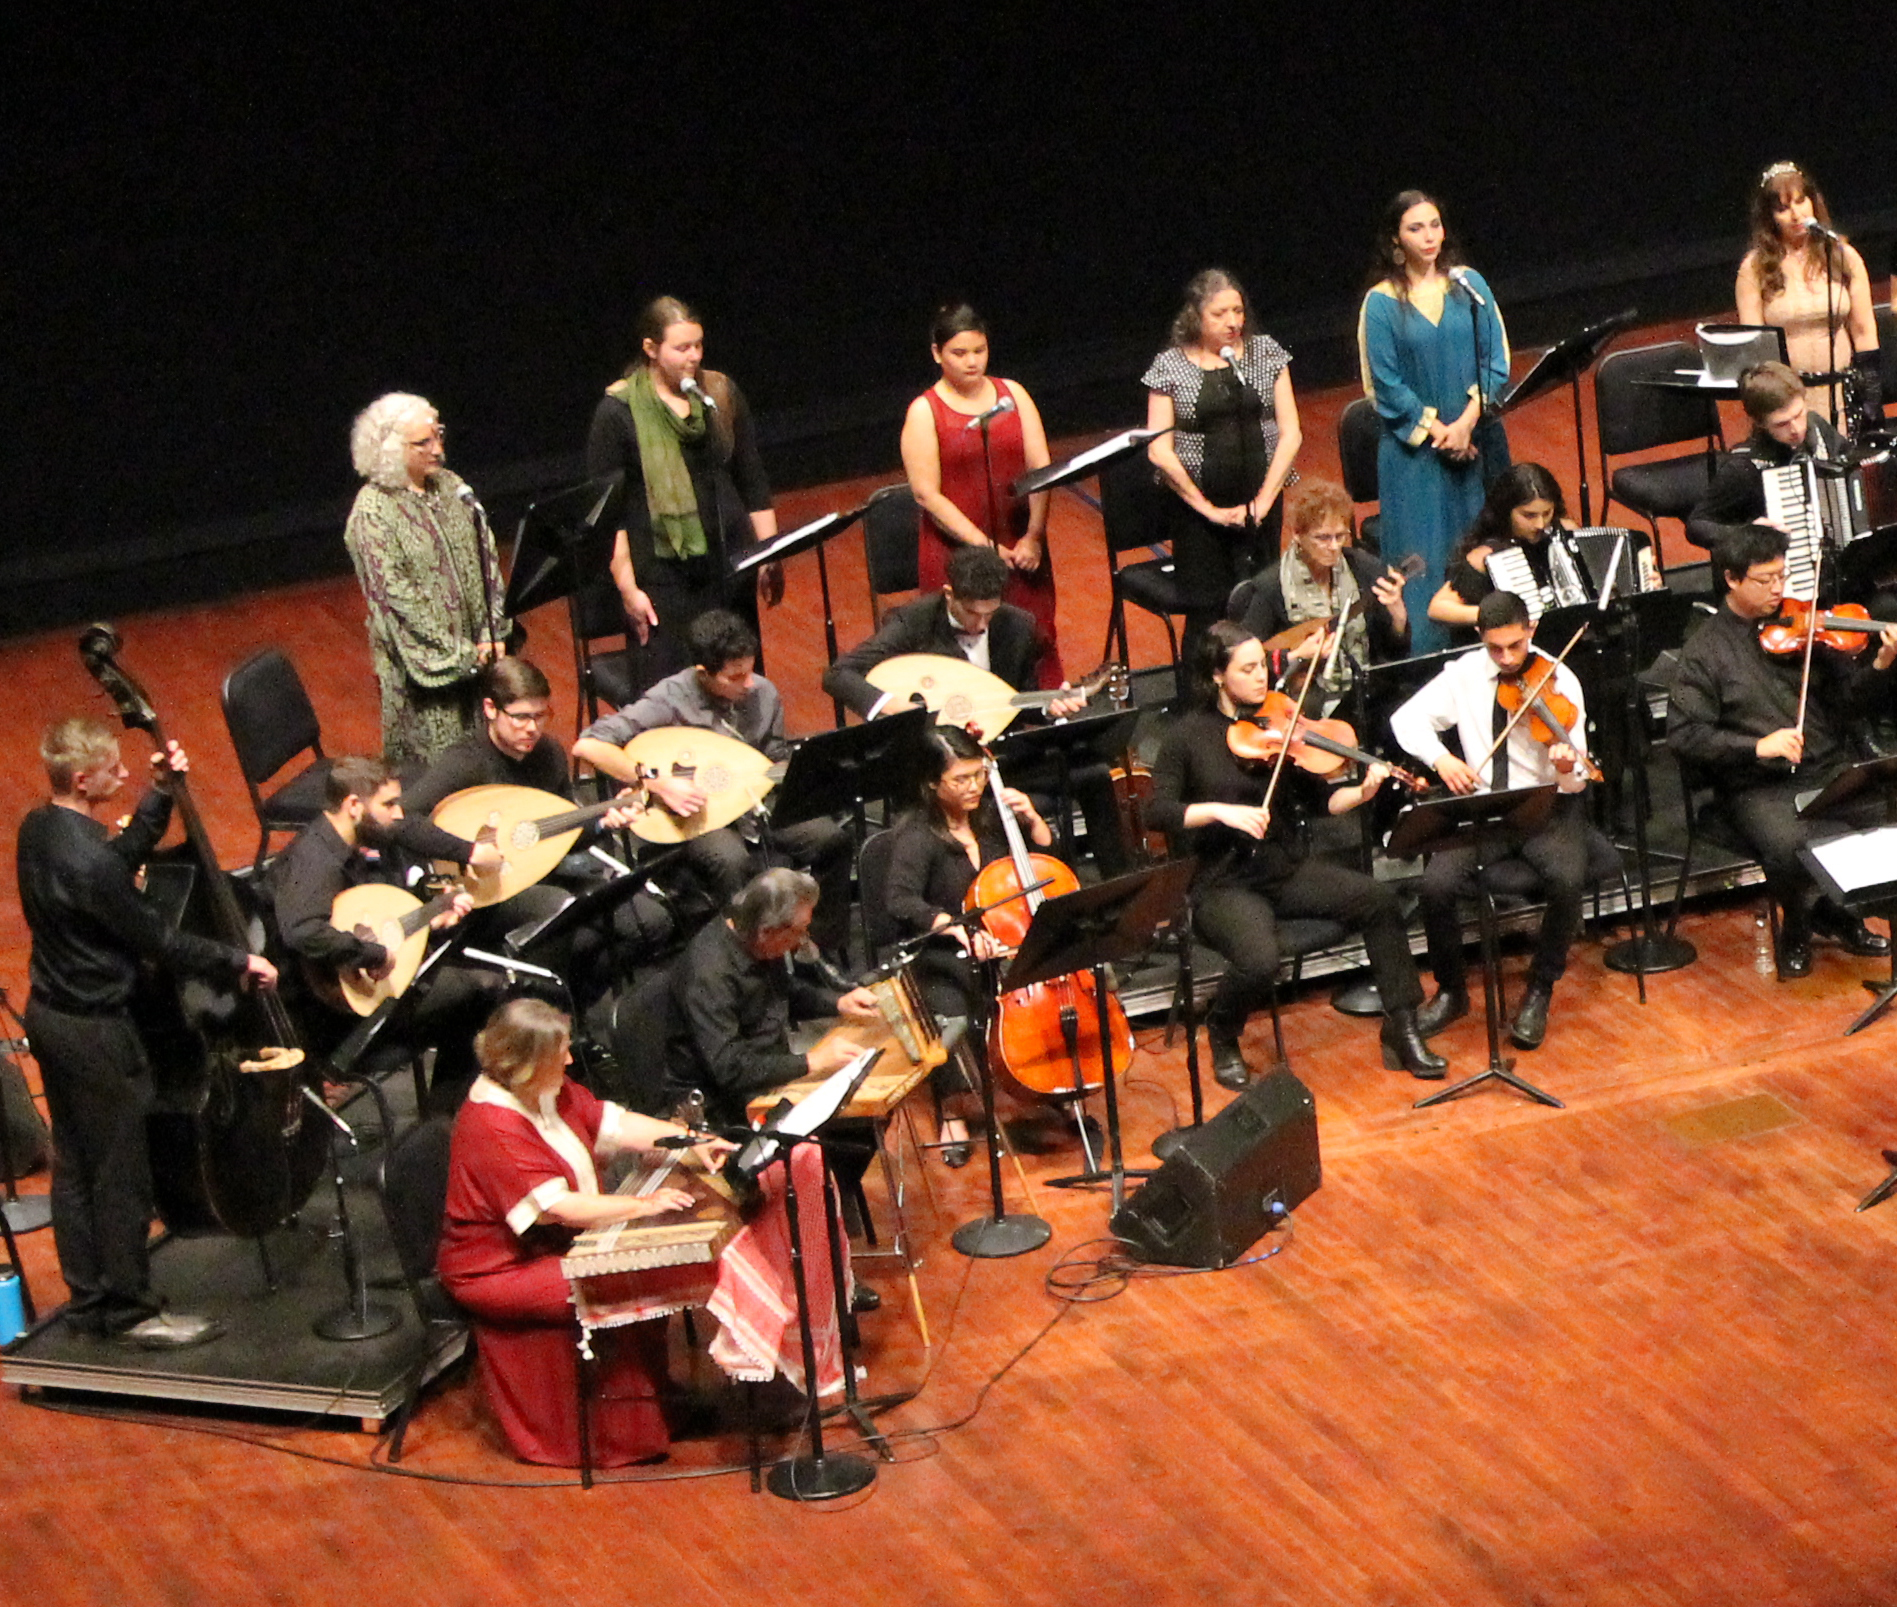 Photo of members of the Arab Music Ensemble from a previous performance.